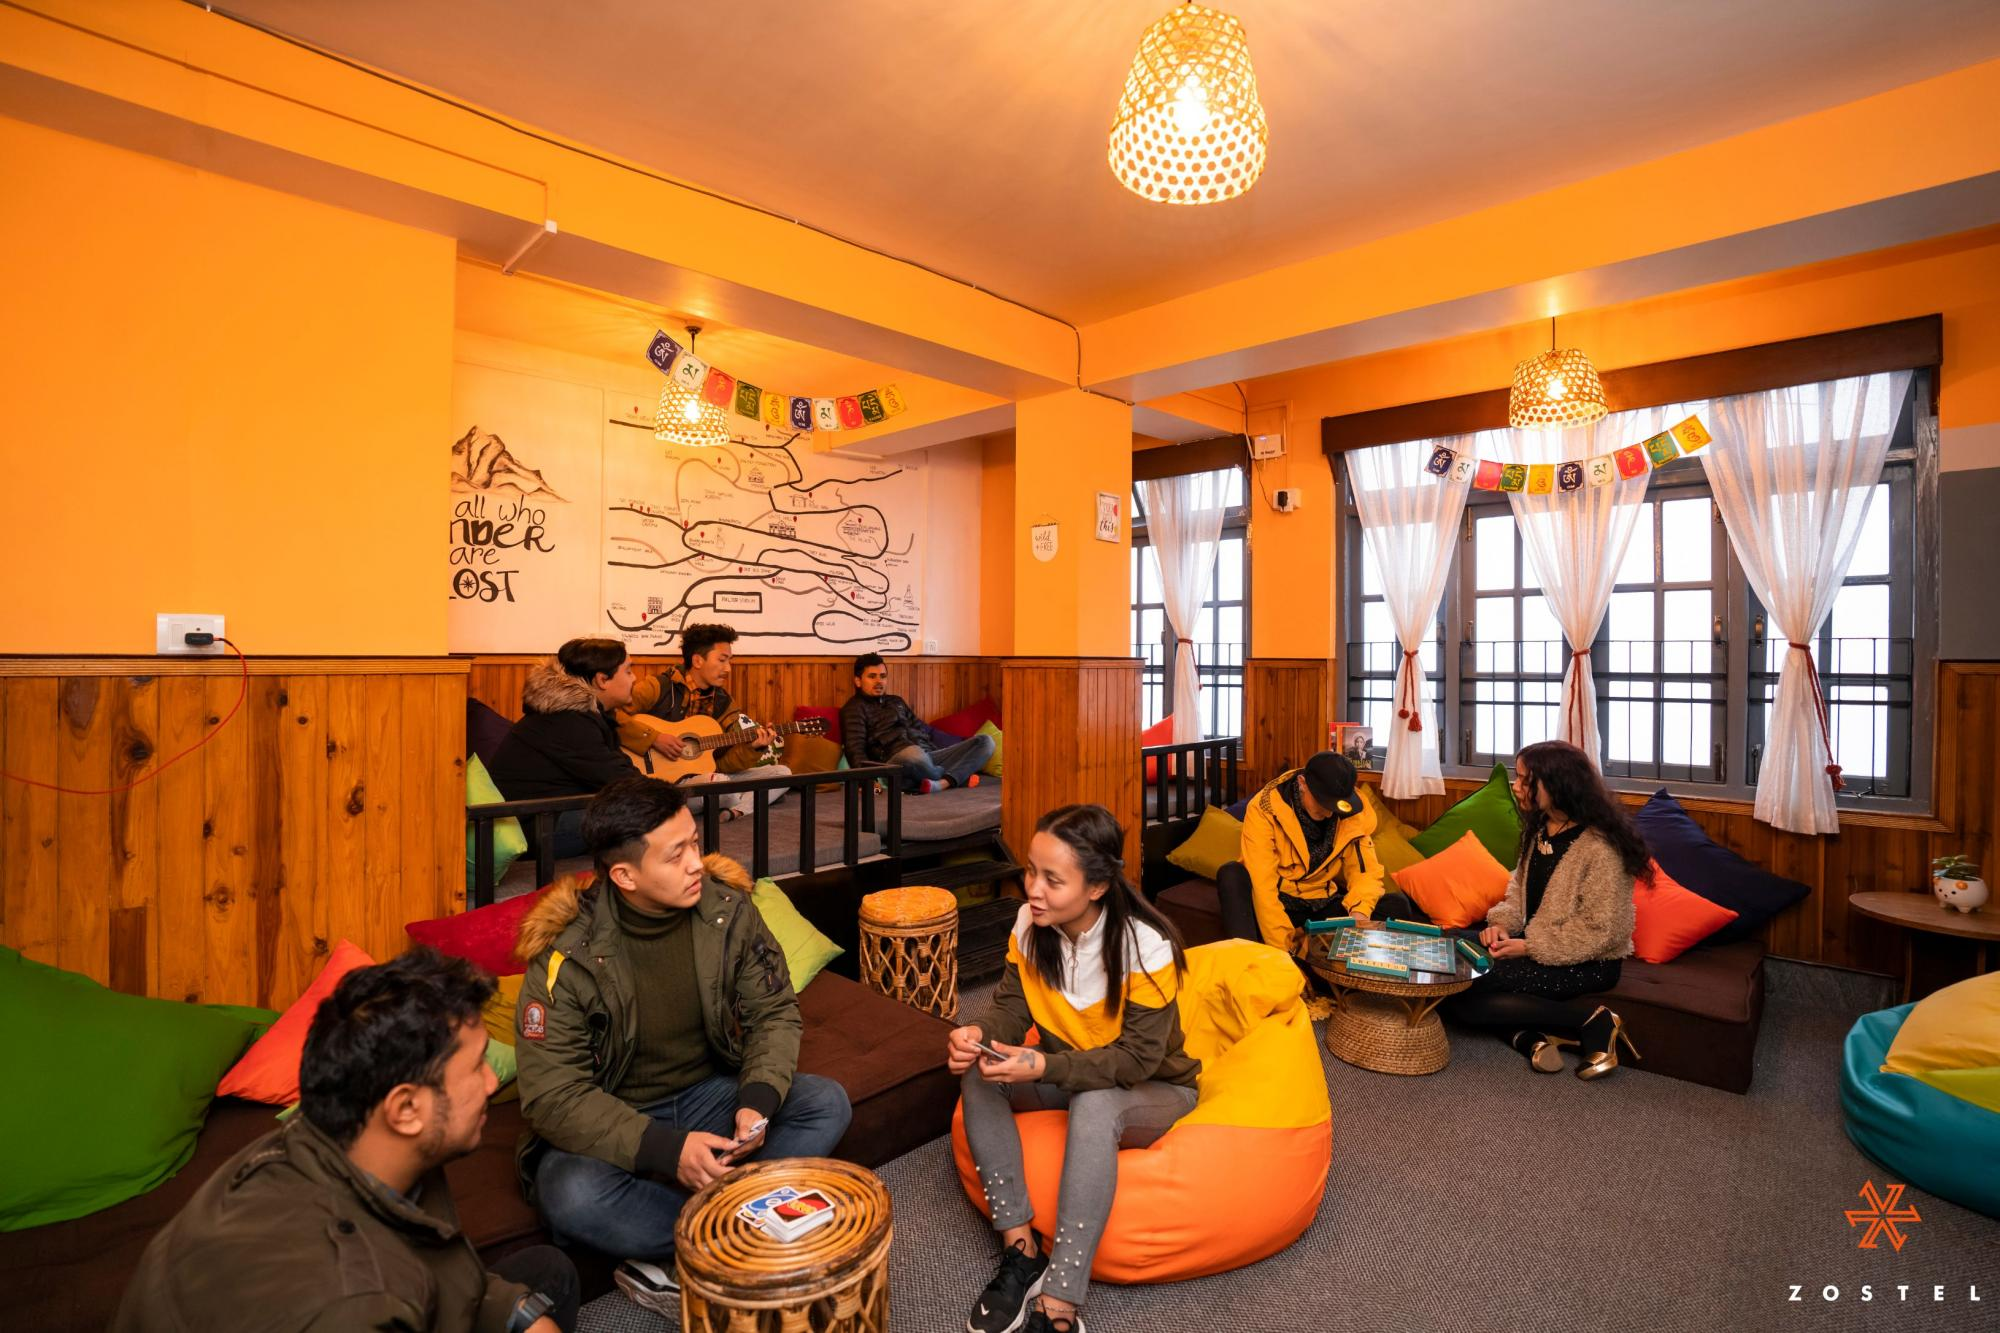 The common room of Zostel Gangtok